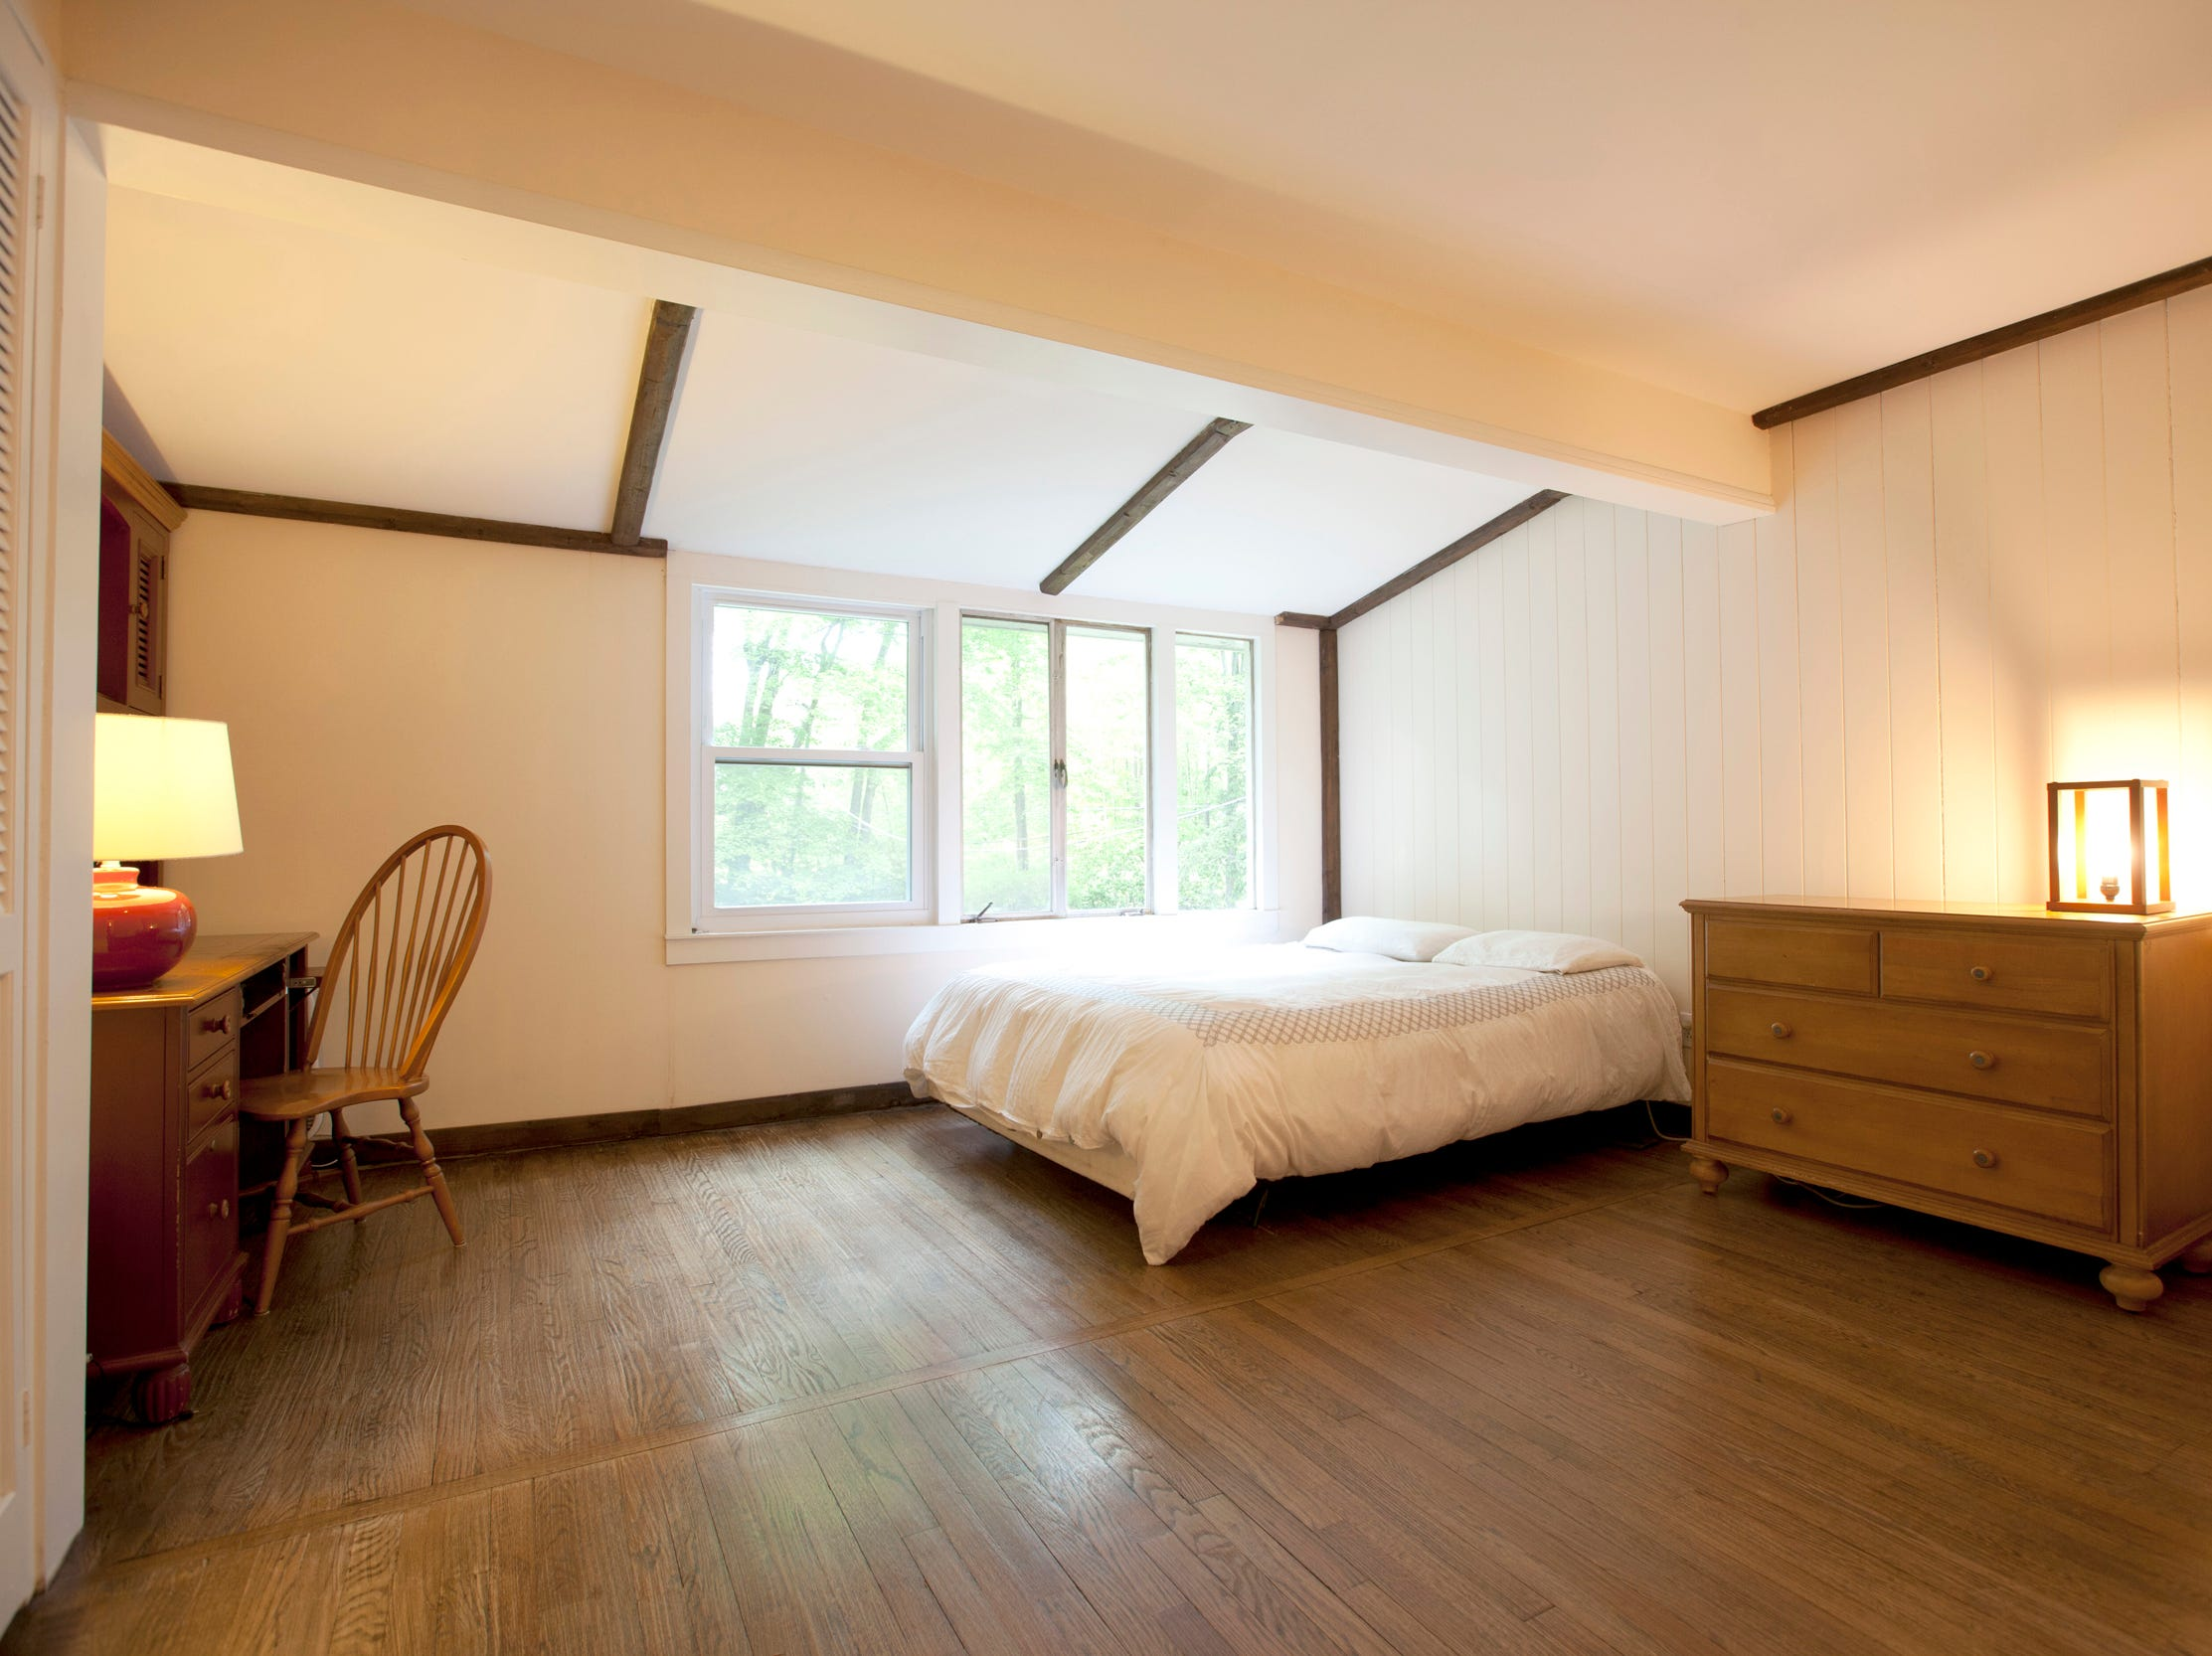 One of the four bedrooms.